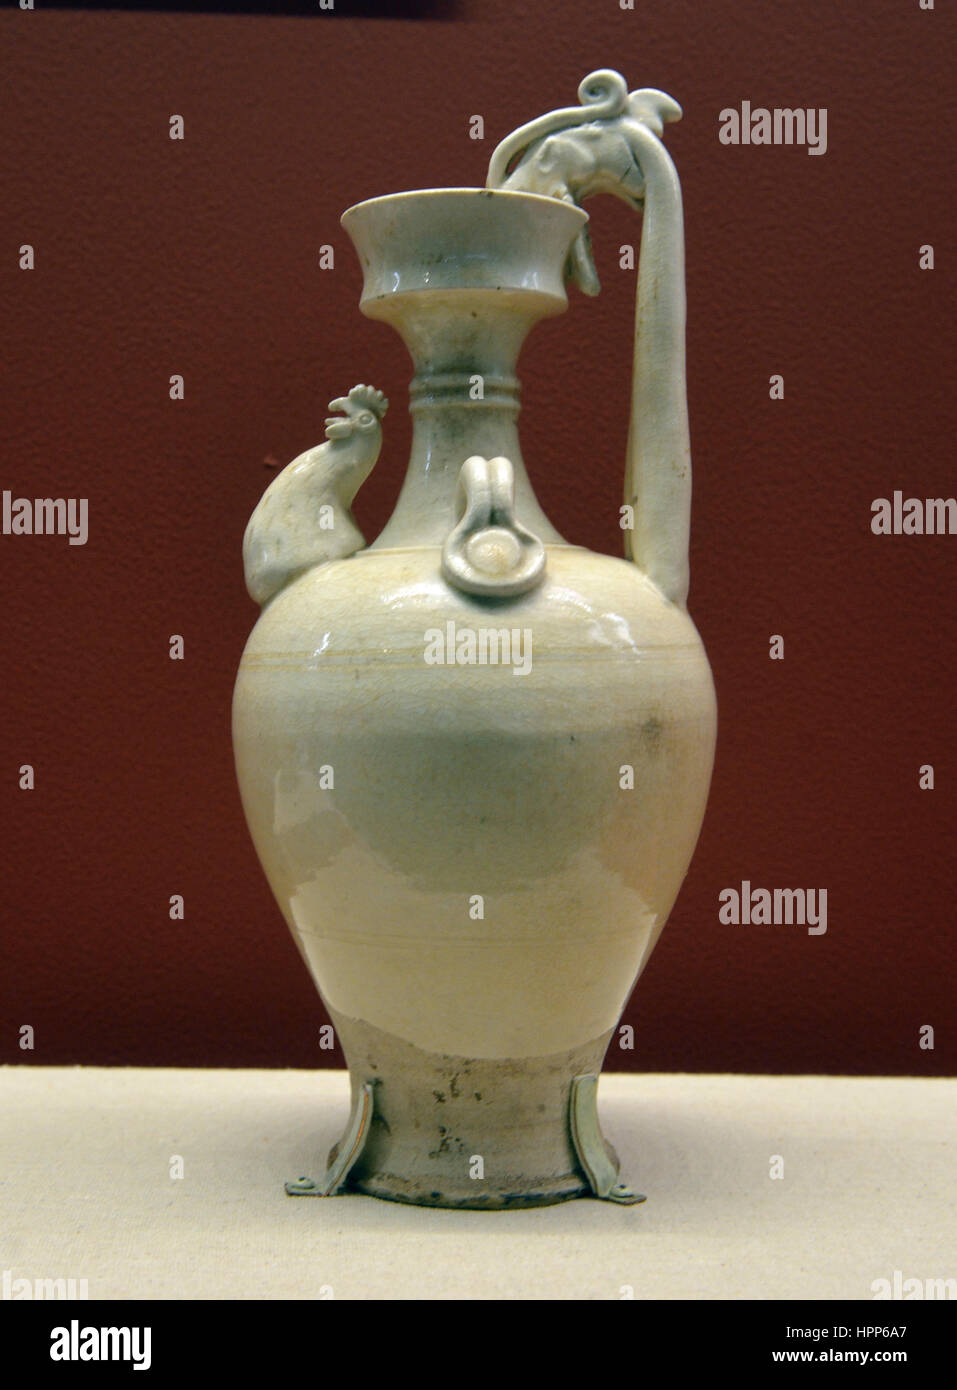 Ceramic whiteware with chicken-spout ewer. Sui Dynasty(581–618 ce). National Museum of China Stock Photo